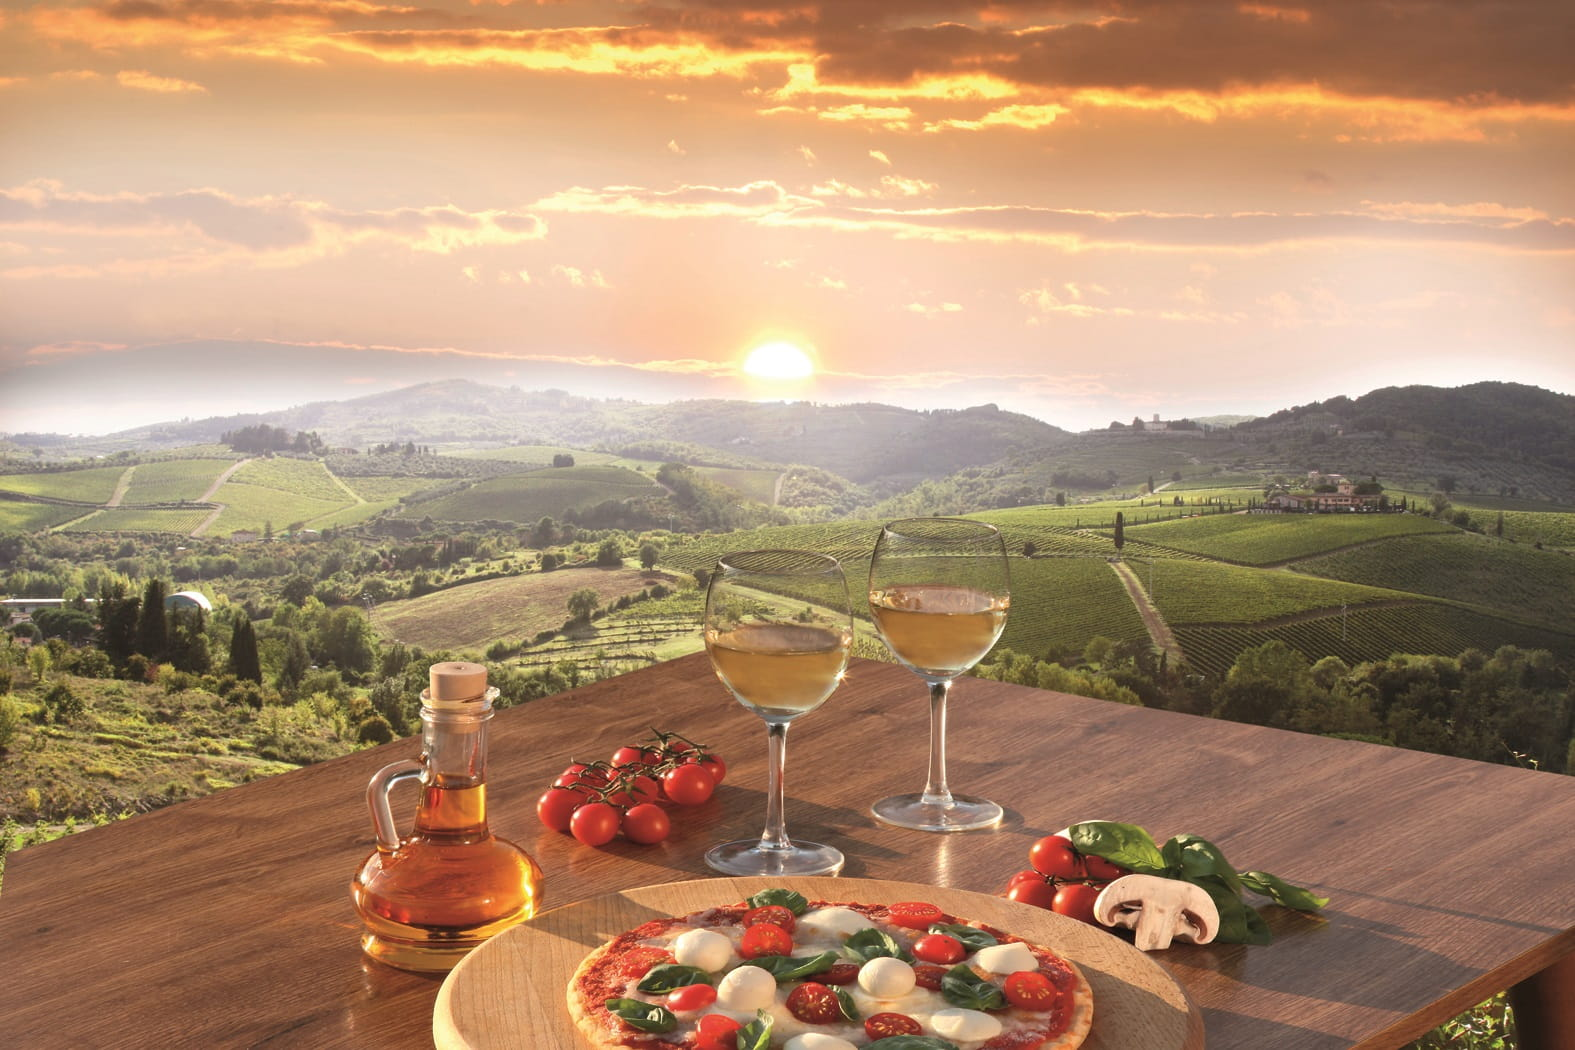 Lunch in the Italian countryside